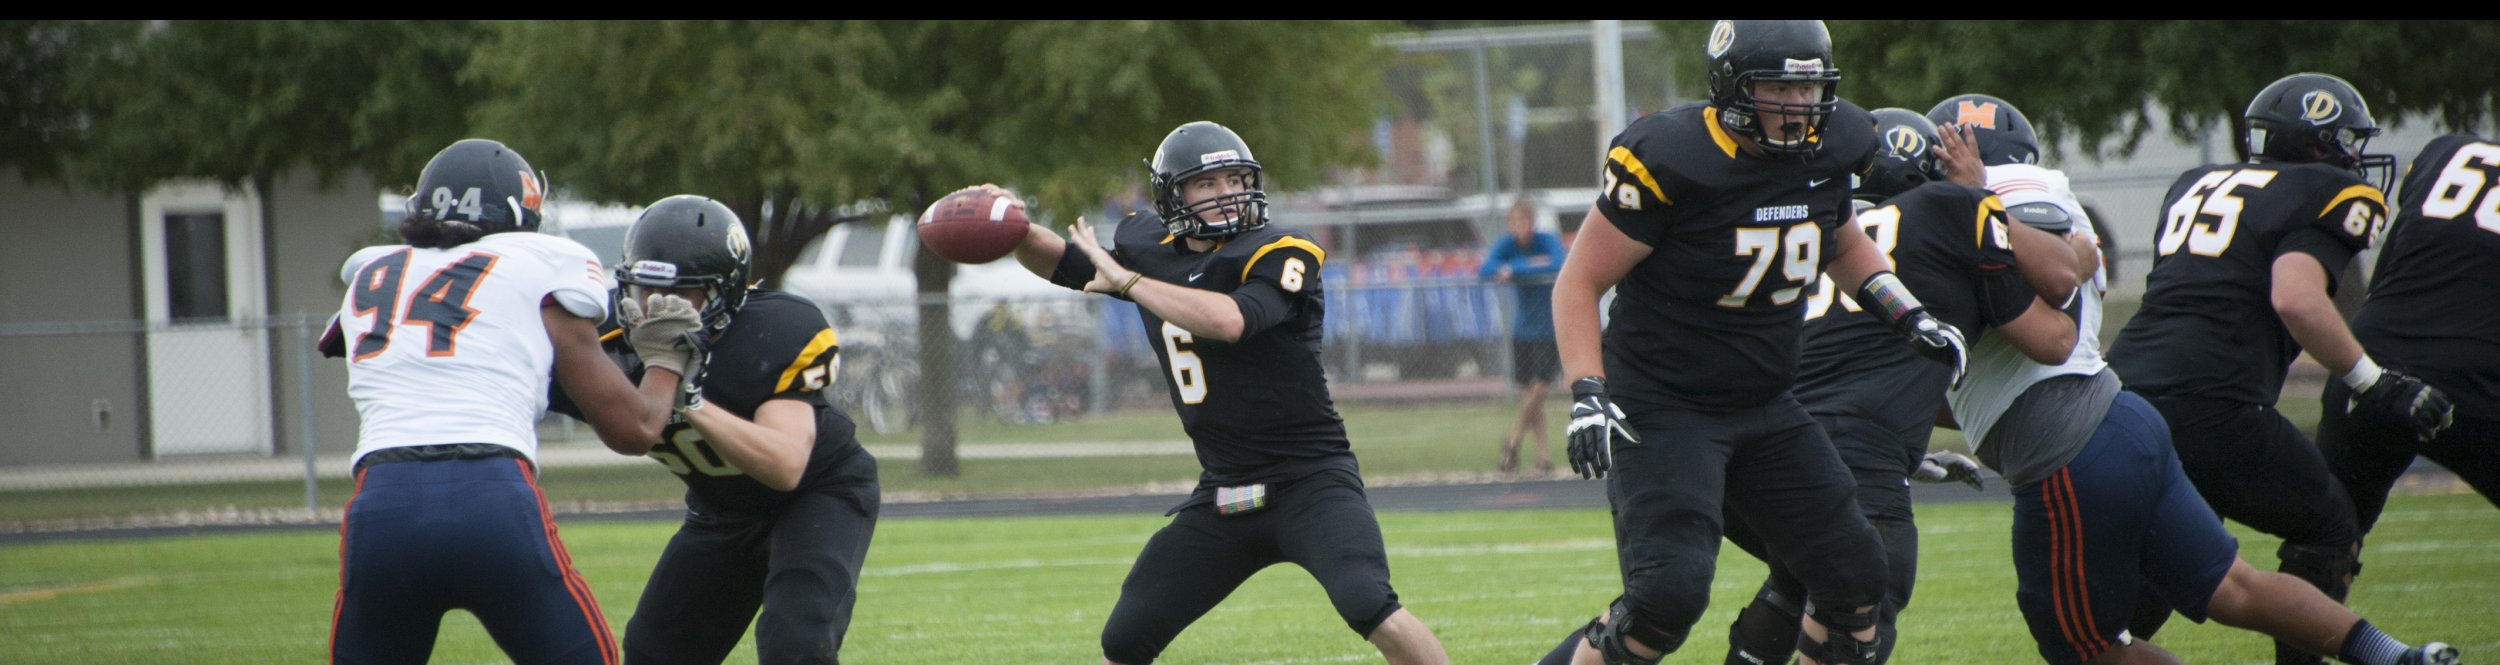 A Dordt football player gets ready to throw the ball.